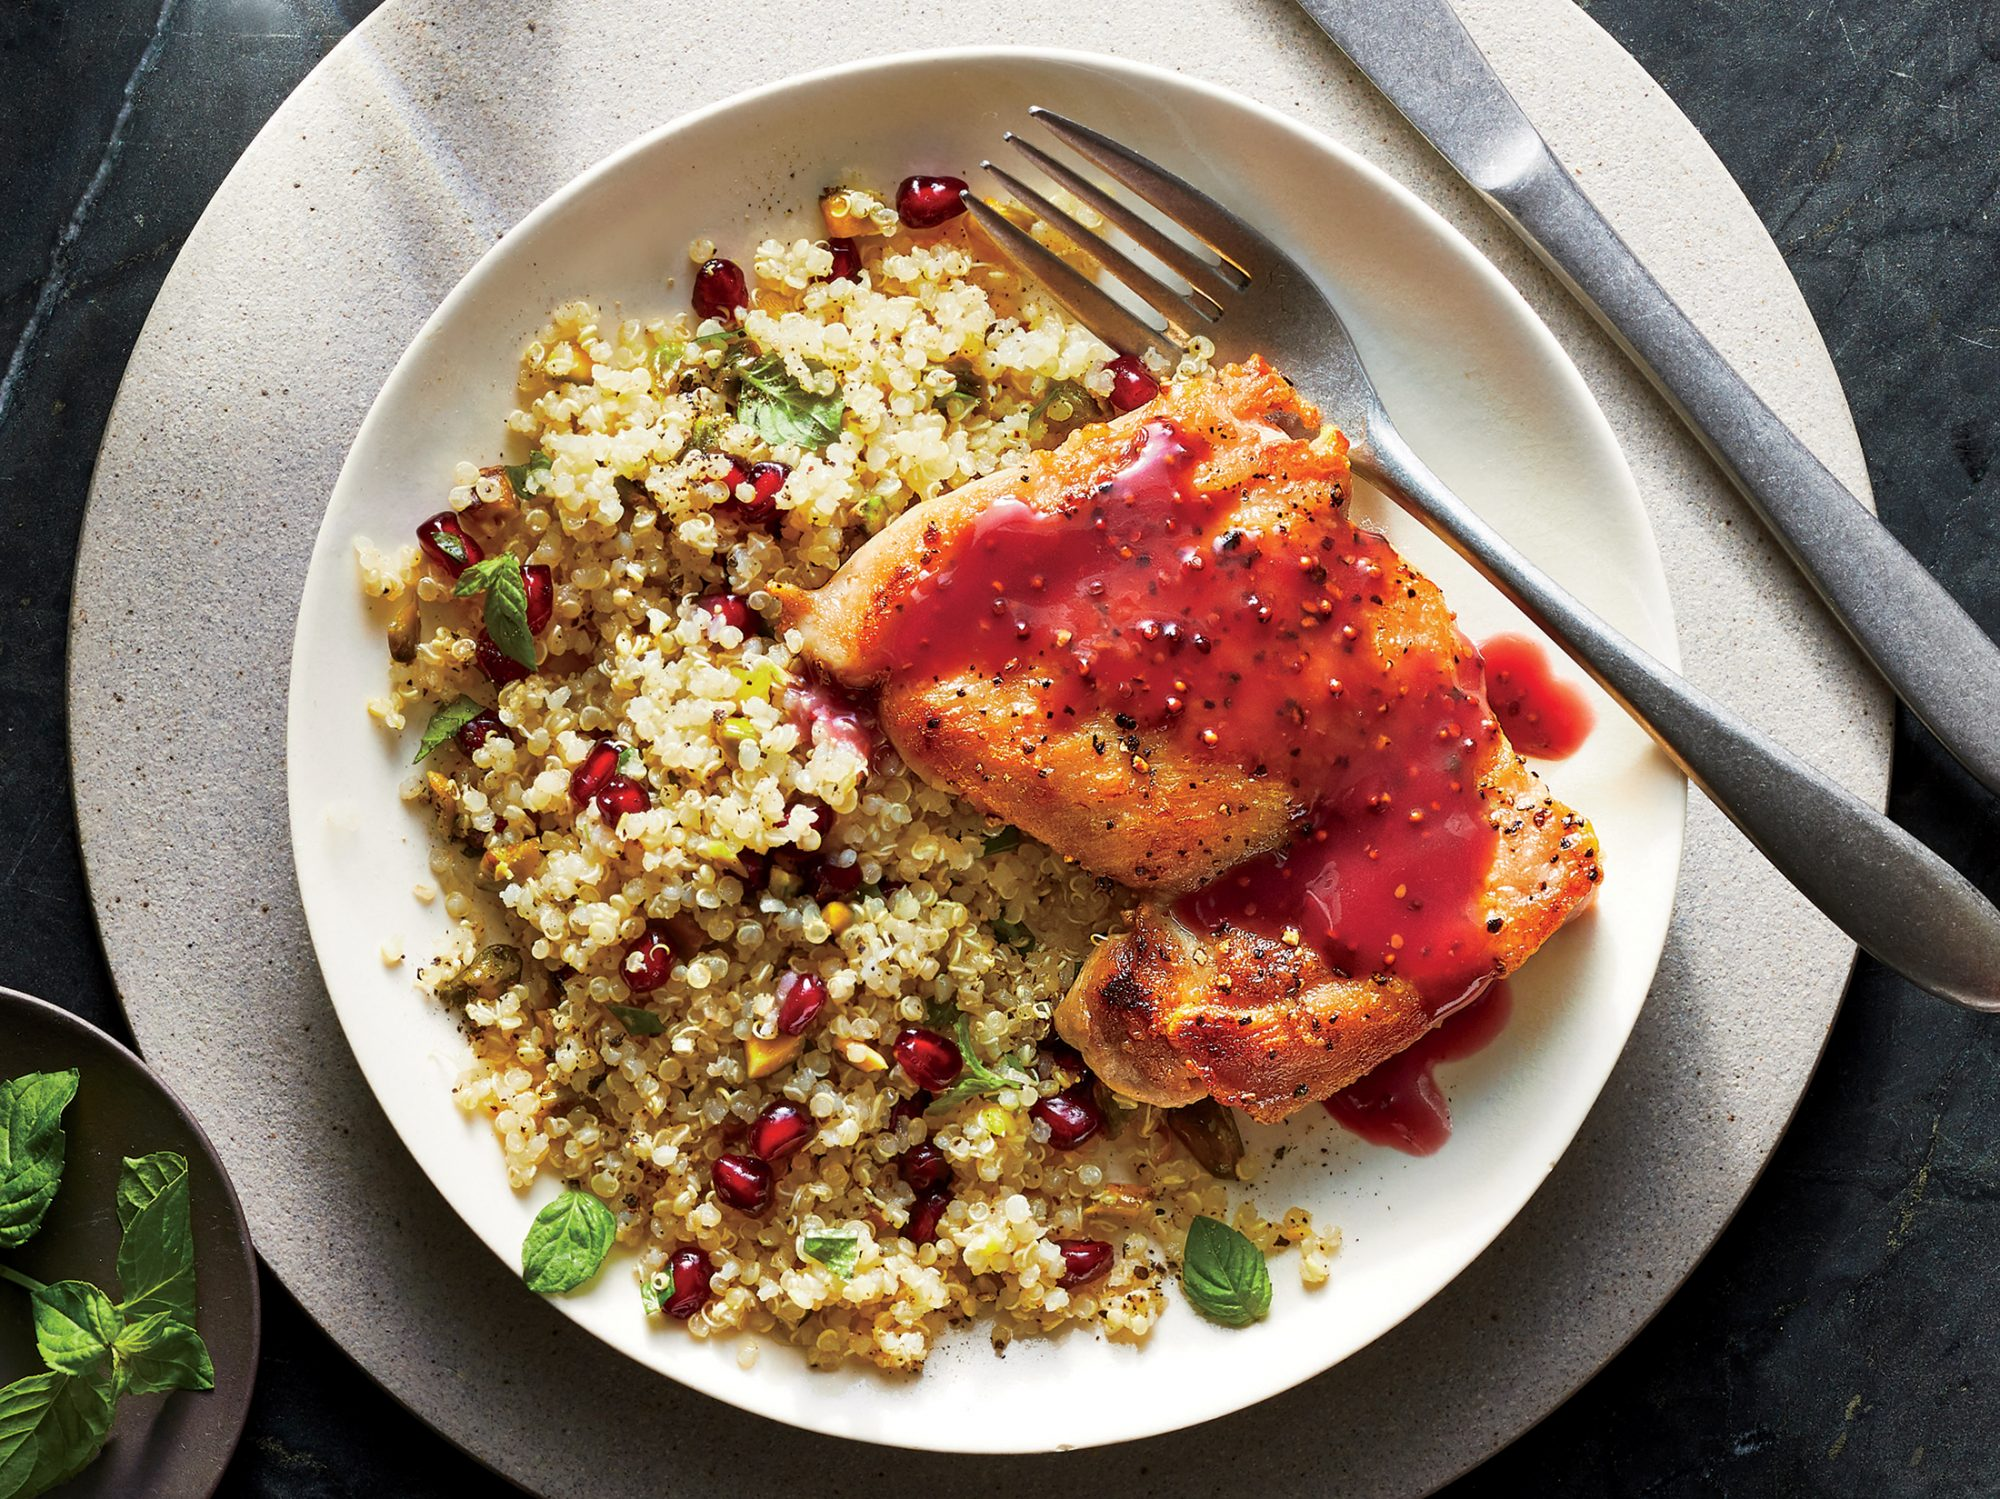 Pomegranate-Glazed Chicken